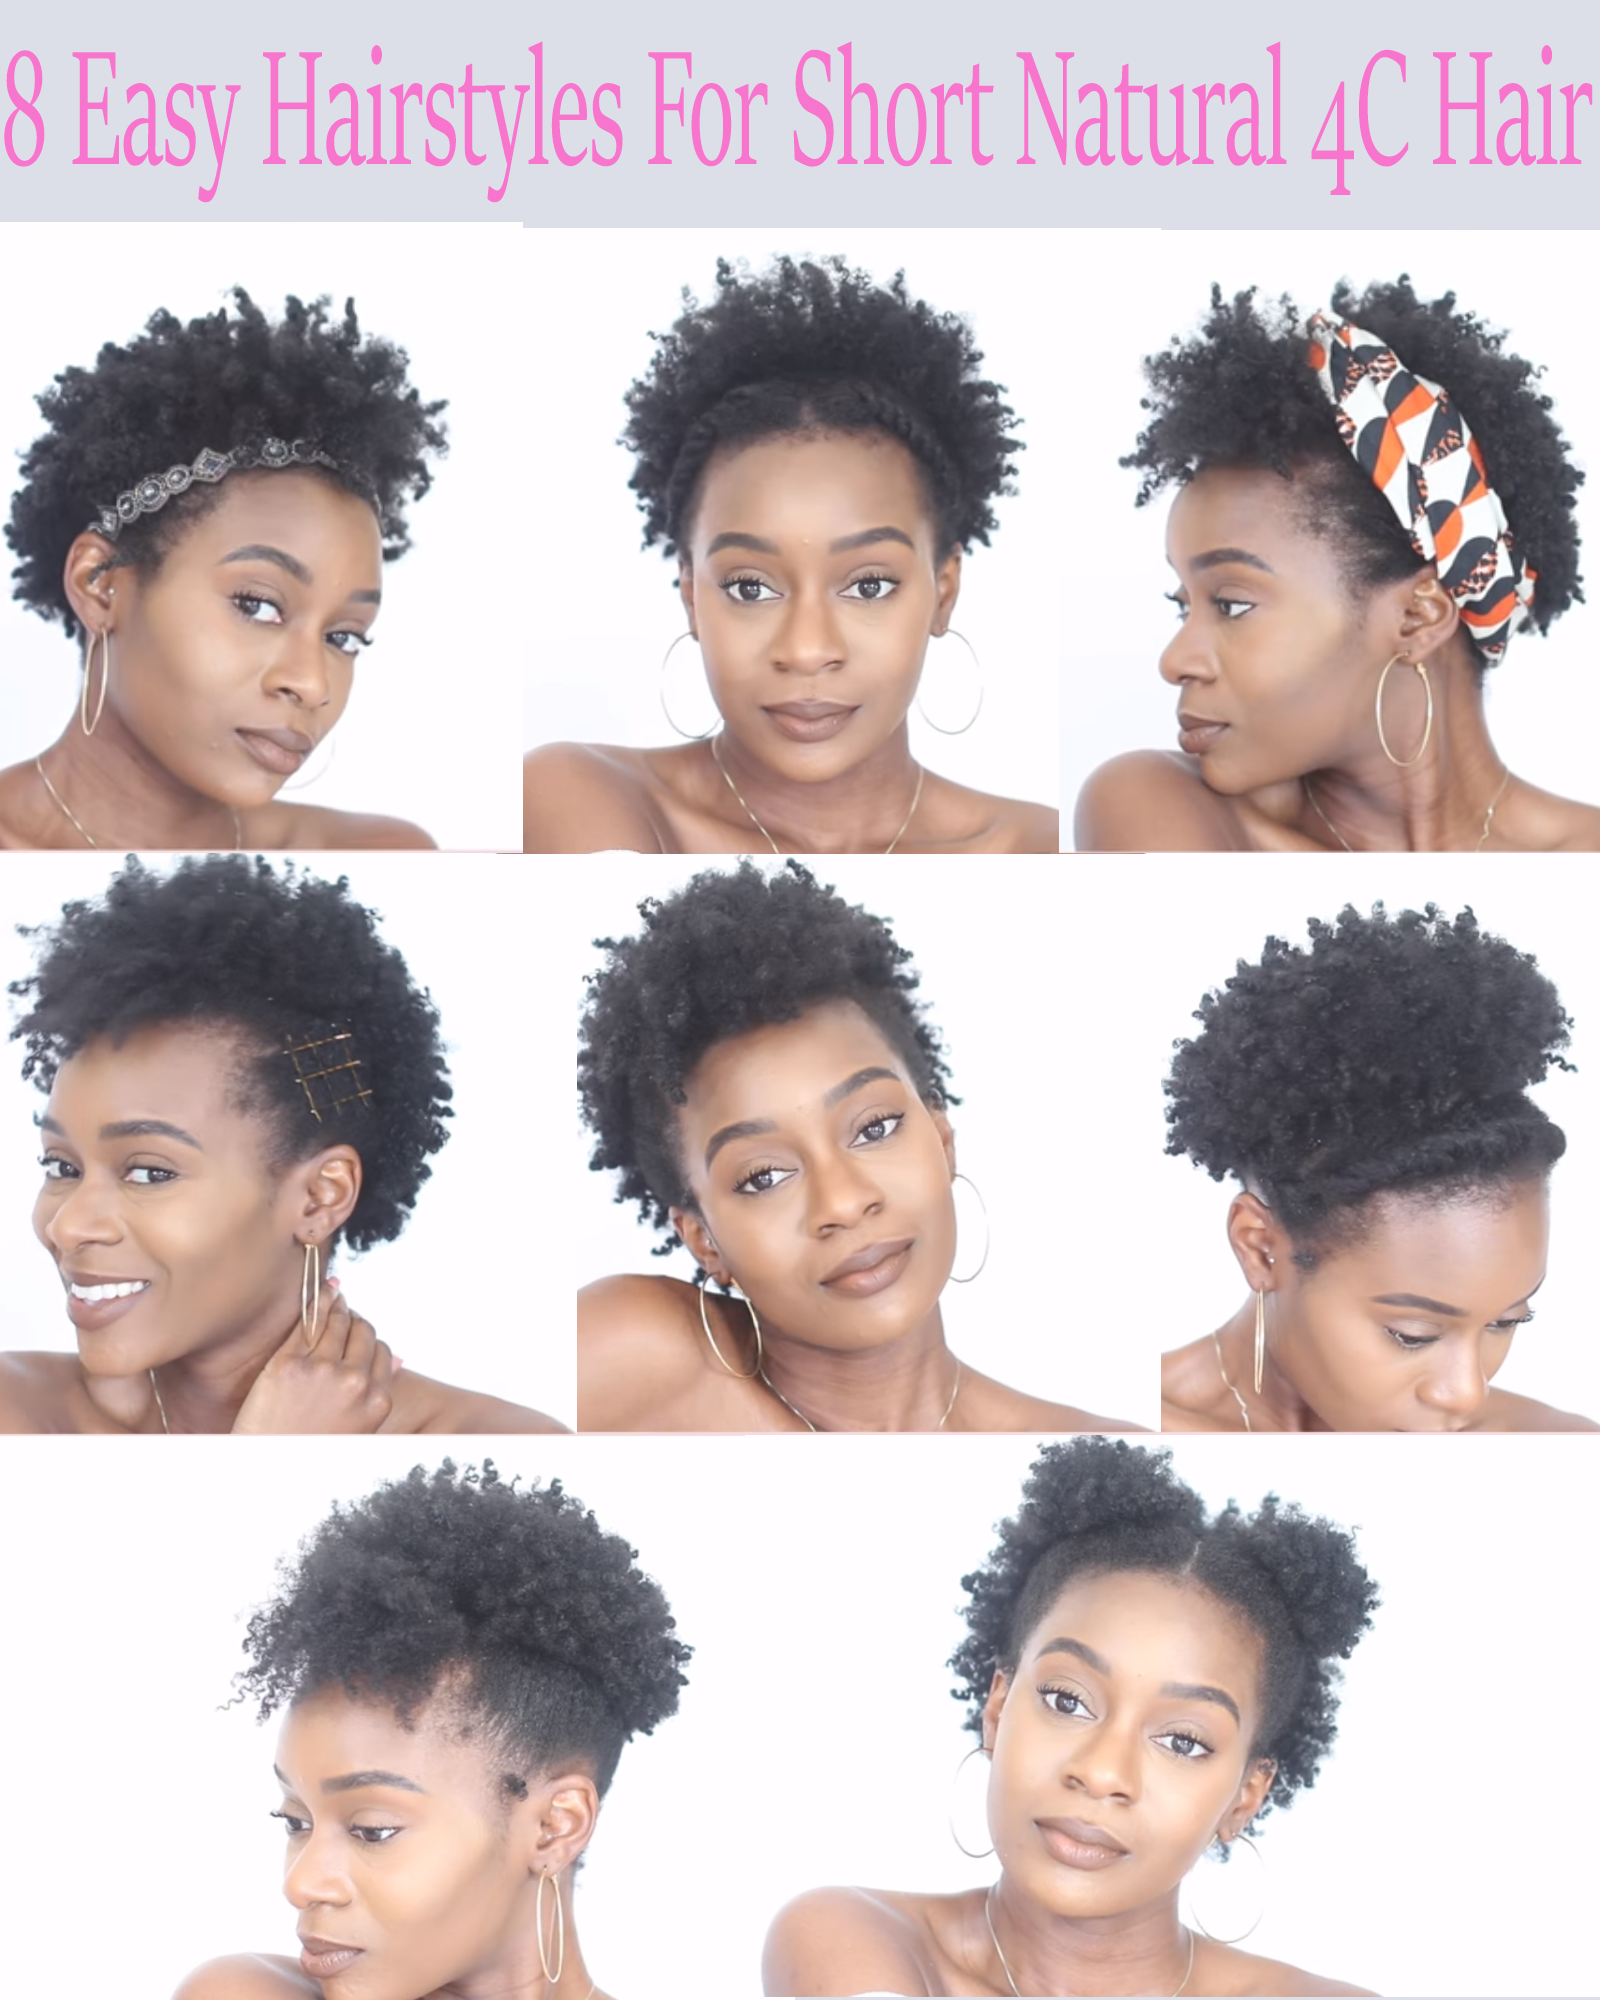 8 Easy Protective Hairstyles For Short Natural 4c Hair That Will Not Damage Your Edges African American Hairstyle Videos Aahv Natural Hair Styles For Black Women Short Natural Hair